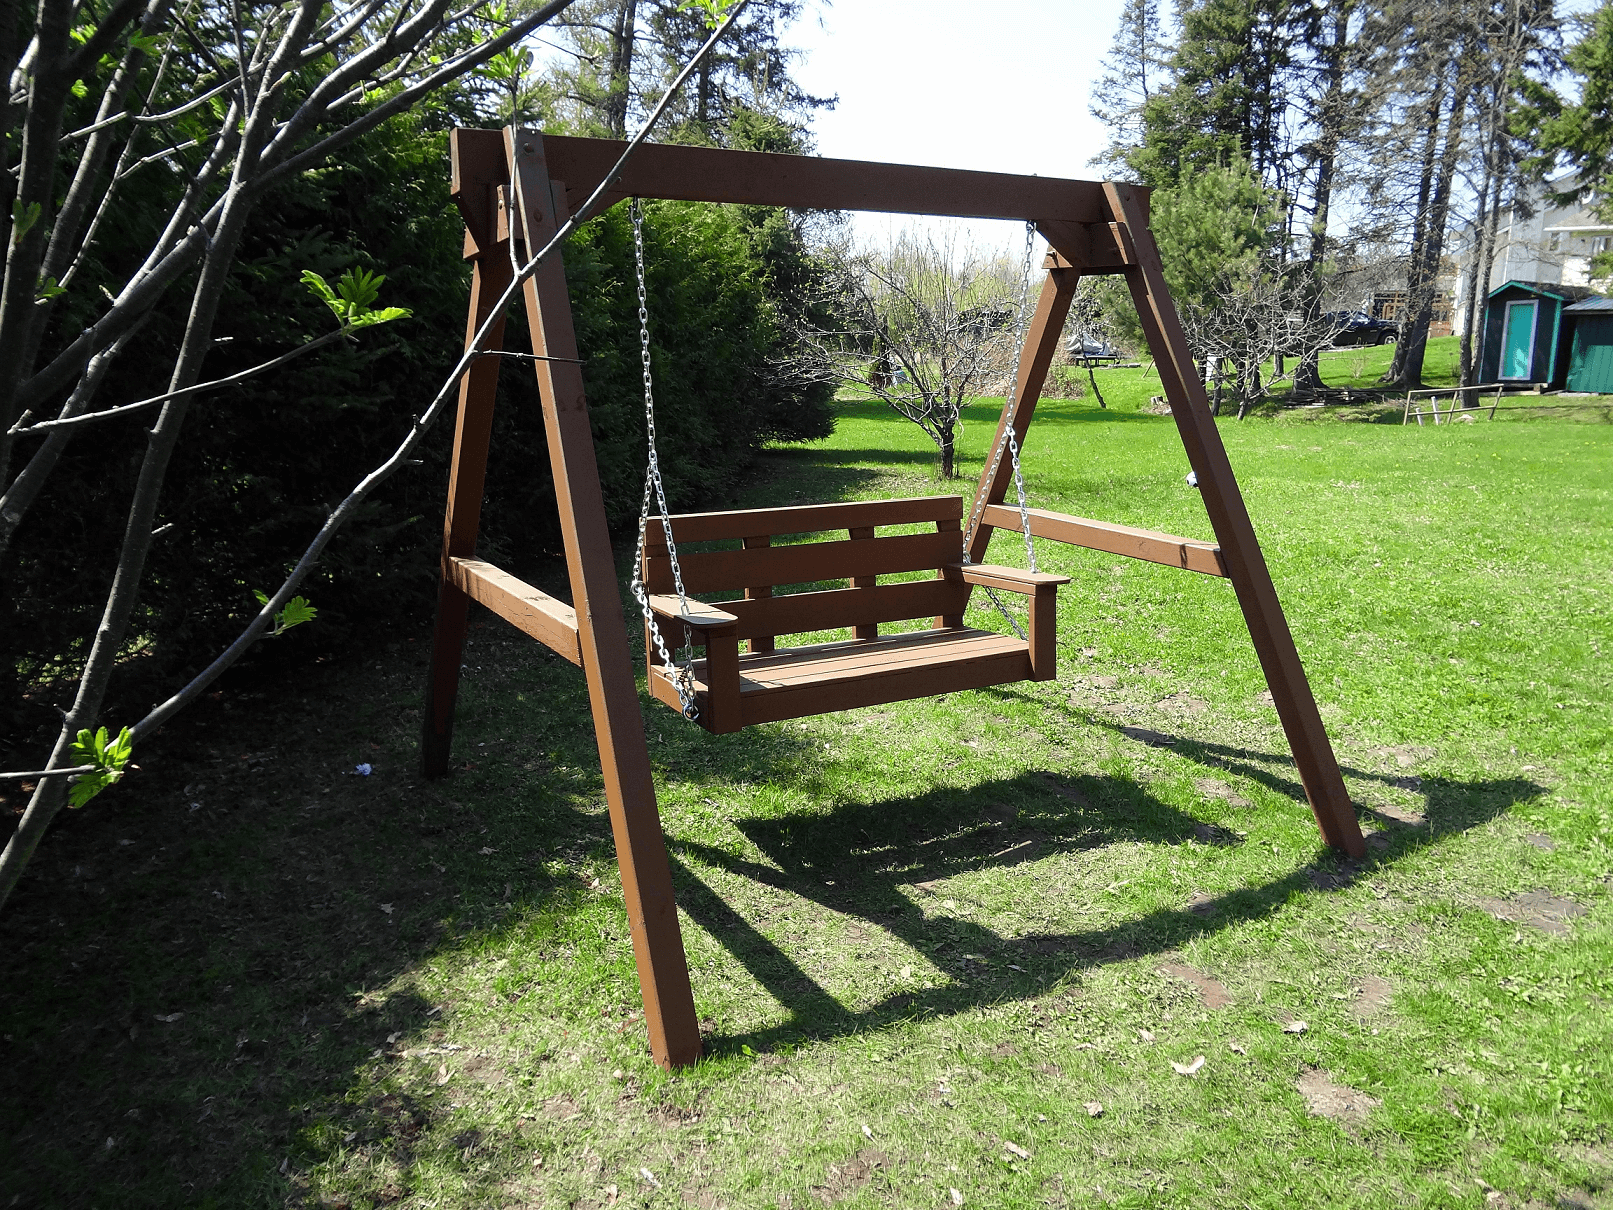 ONE OF BEST PORCH SWING DESIGN IDEAS, FRAME PORCH SWING